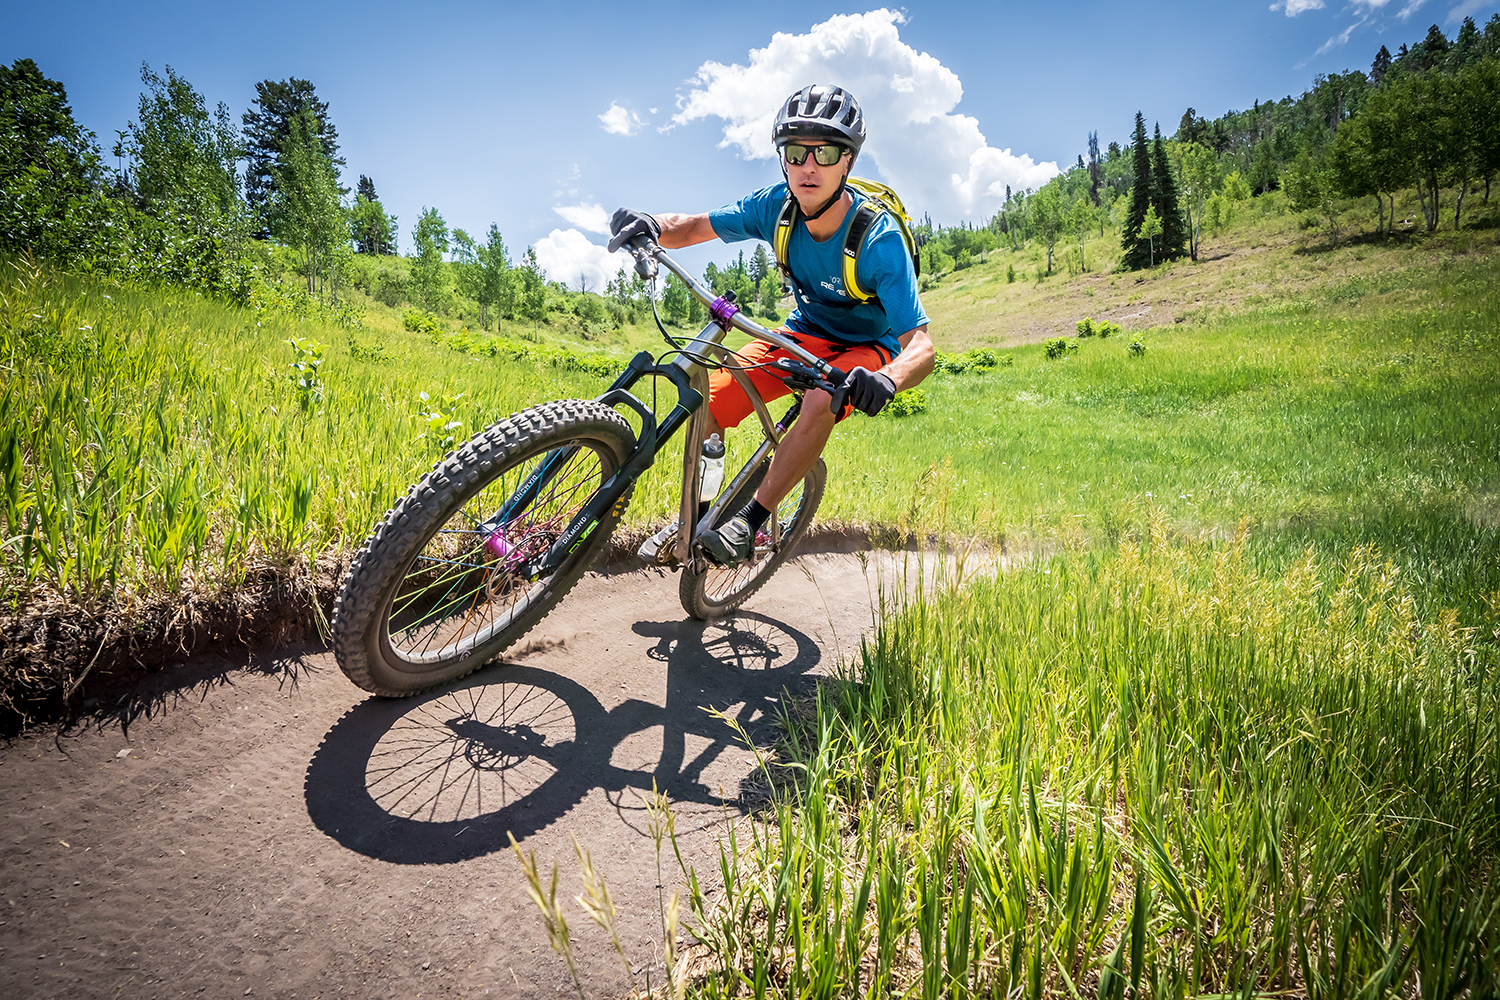 Aspen is great for mountain biking in the summer